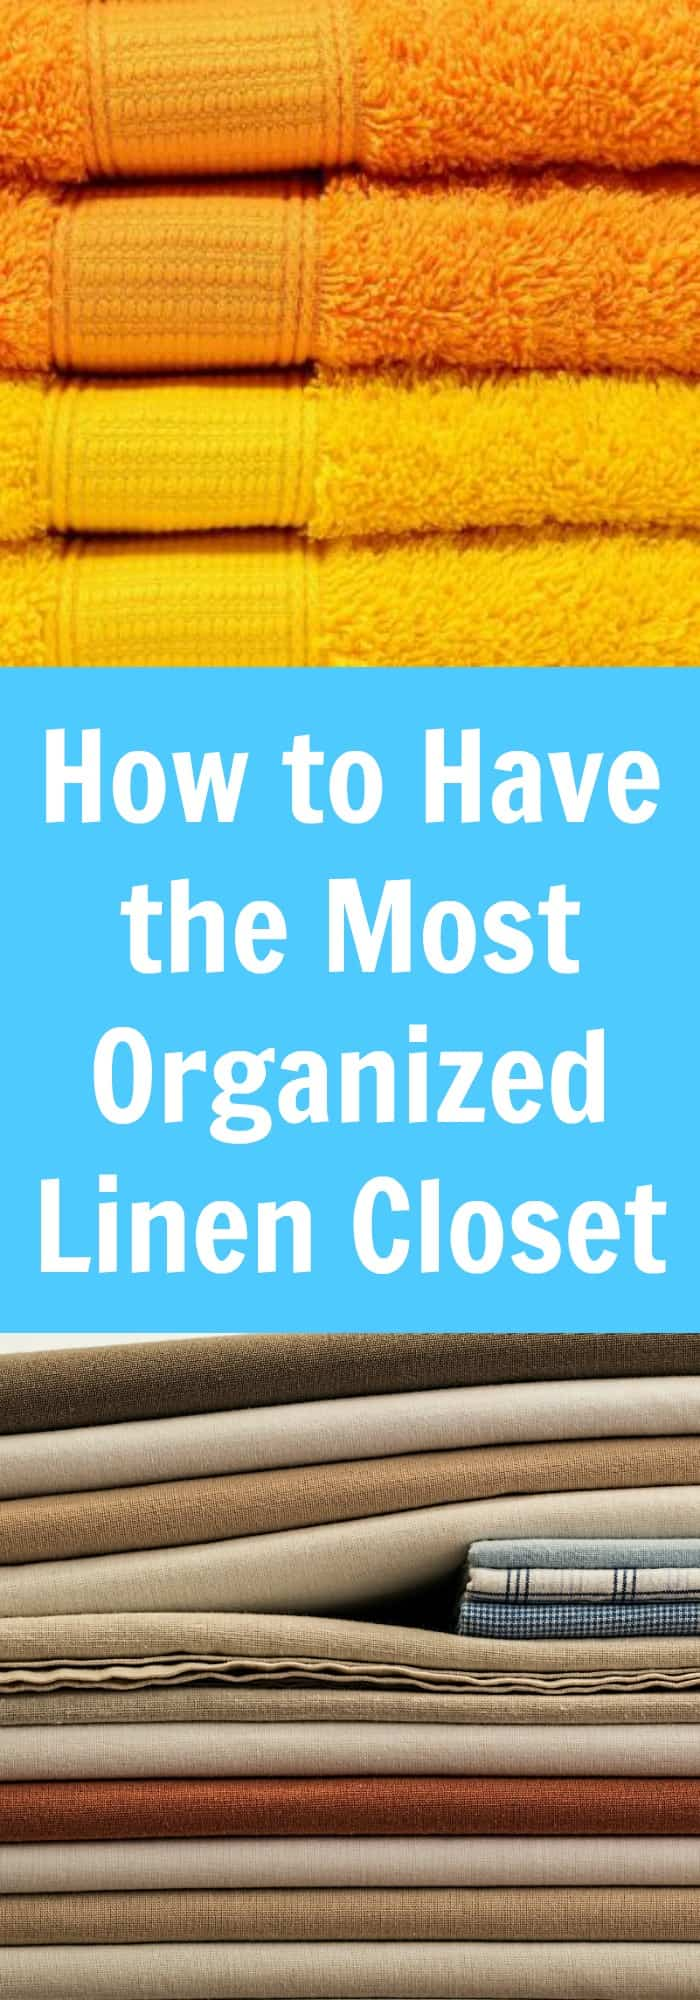 Organization--How to Have the Most Organized Linen Closet--The Organized Mom